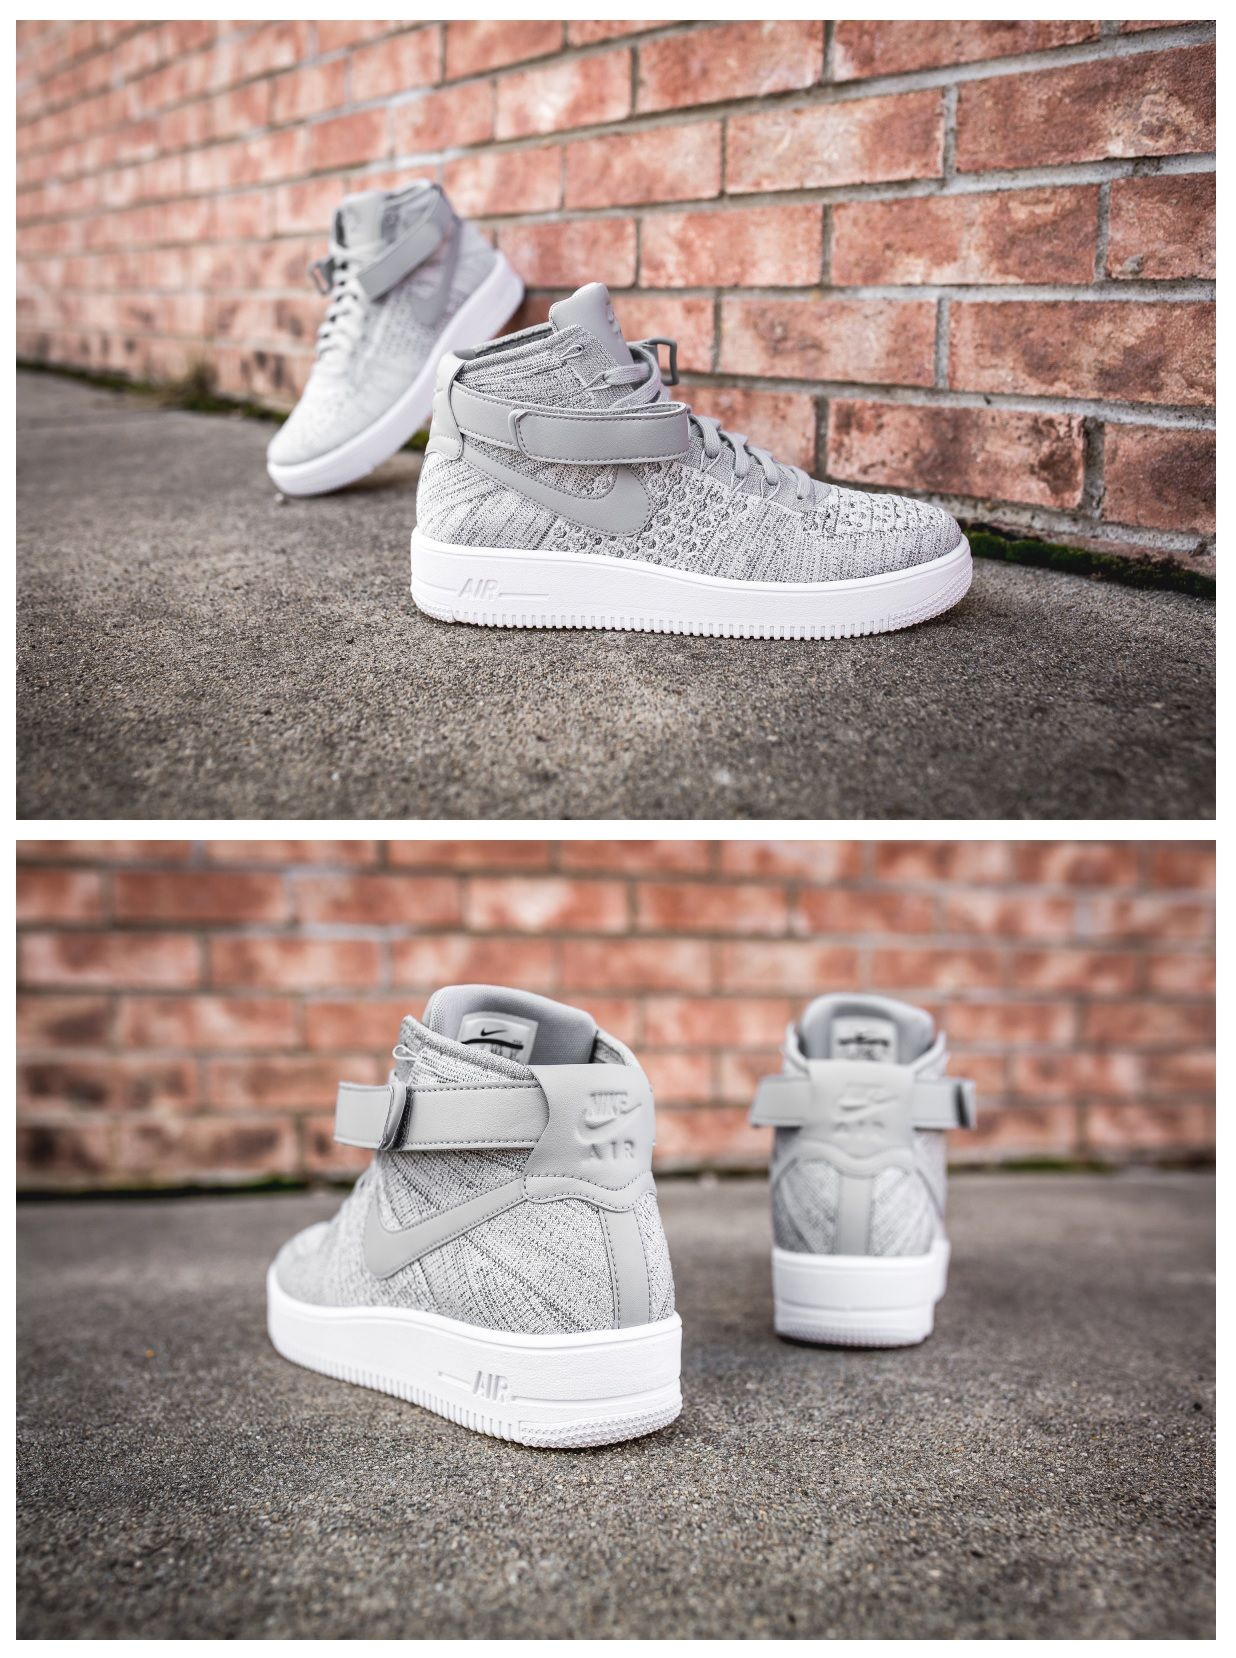 26+ Nike air force boots ideas information